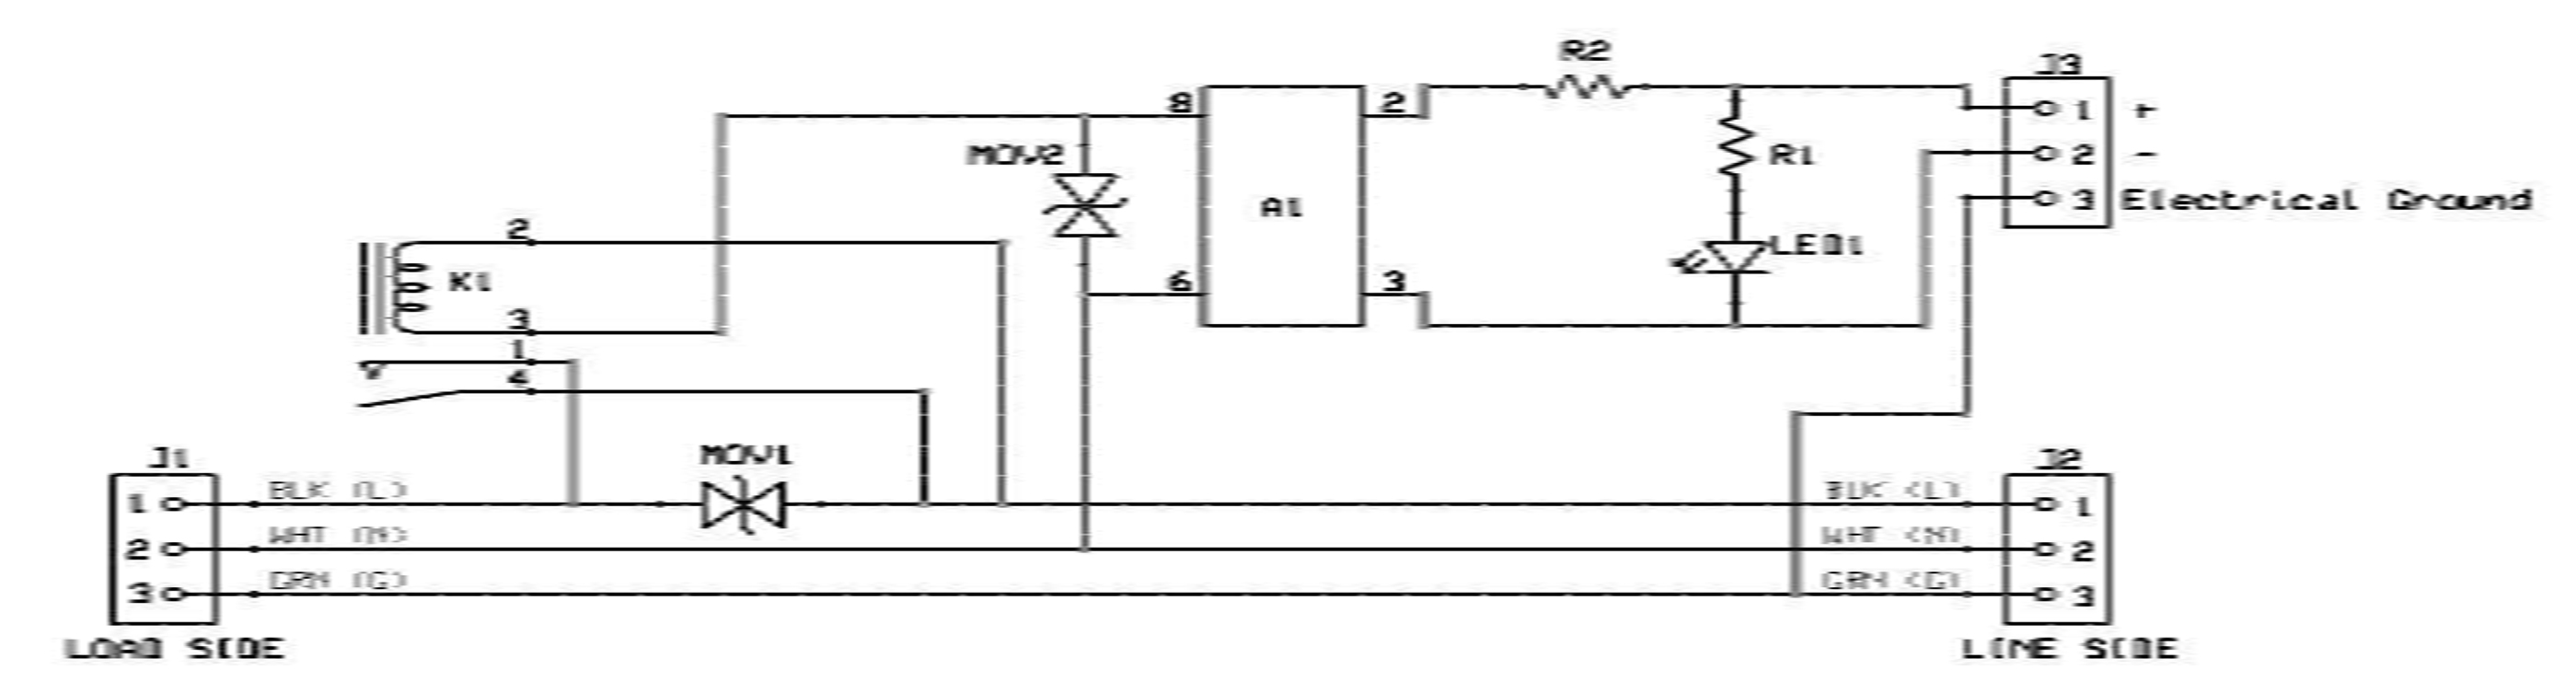 Drivers Relays And Solid State Mbed Relay Fail Closed Power Switch Tail Ii Schematic